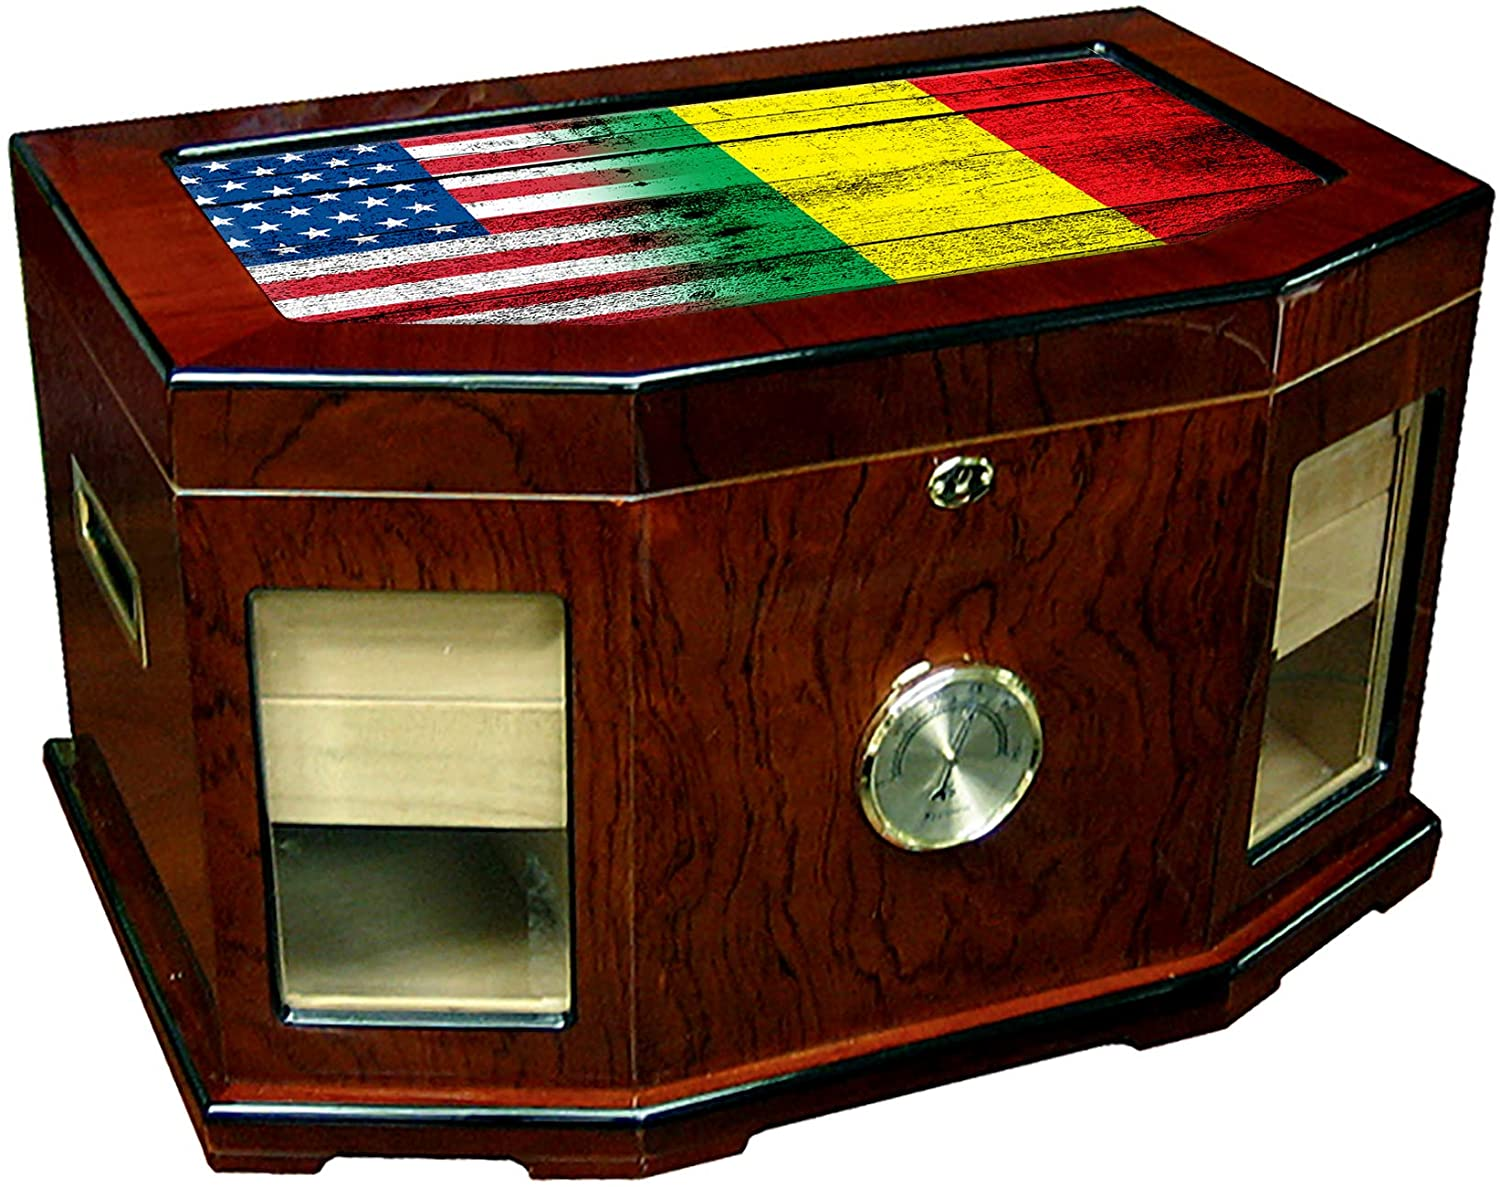 Large Premium Desktop Humidor - Glass Top - Flag of Mali (Malian) - Wood with USA Flag - 300 Cigar Capacity - Cedar Lined with Two humidifiers & Large Front Mounted Hygrometer.